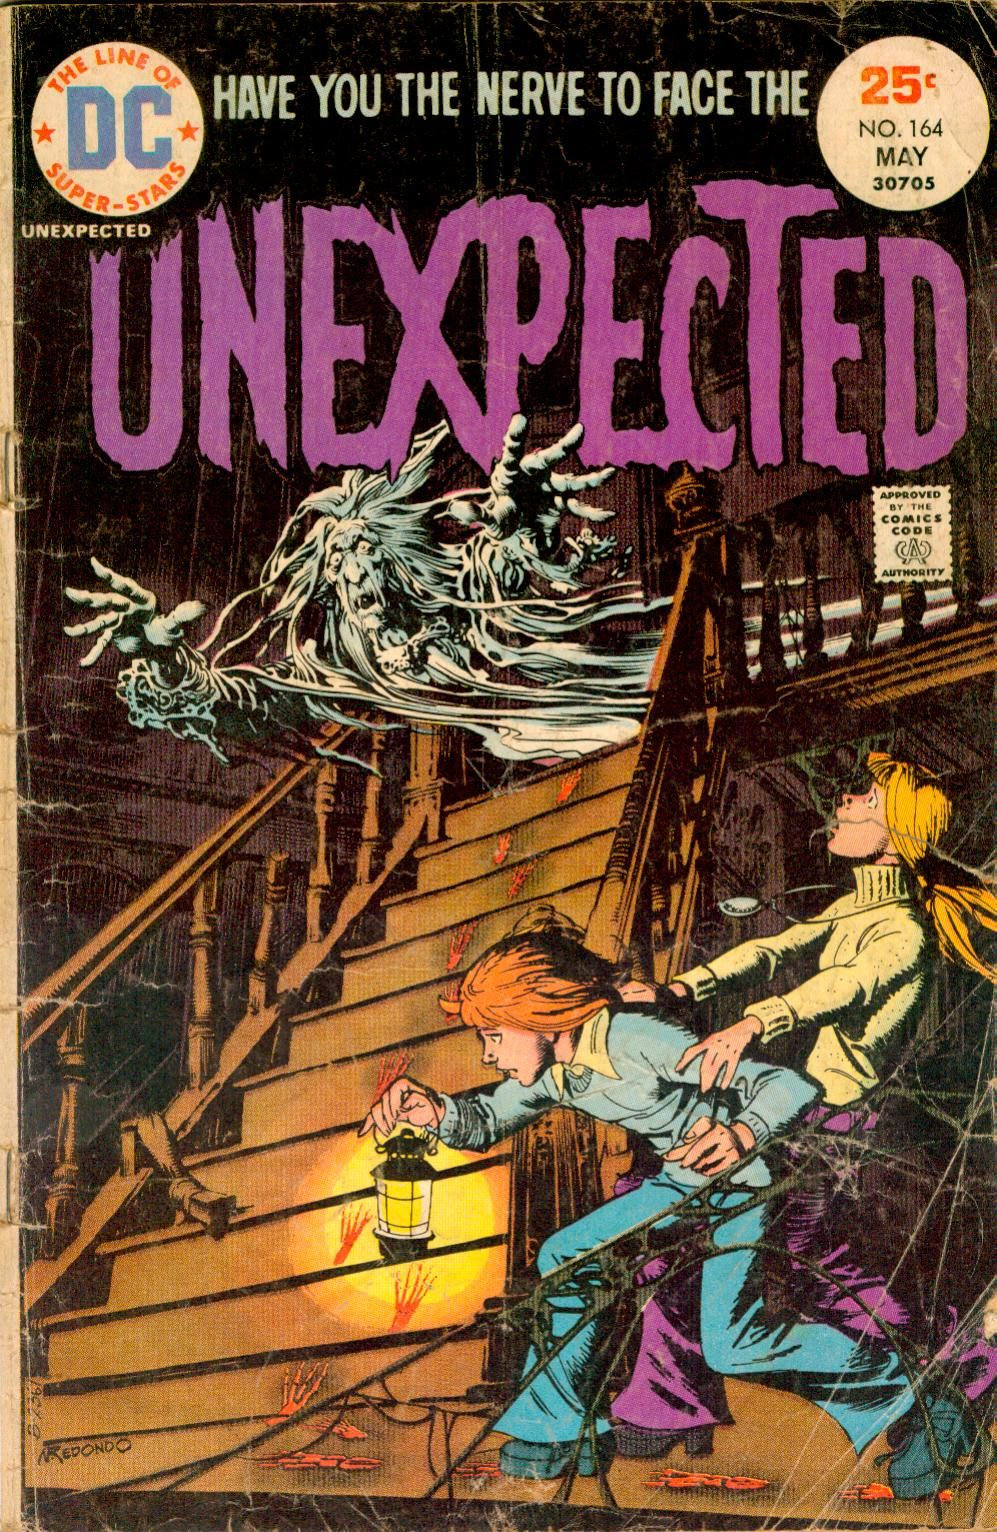 Horror Comics | Dr. Theda's Crypt: Many More Horror Comics Yet to Come....